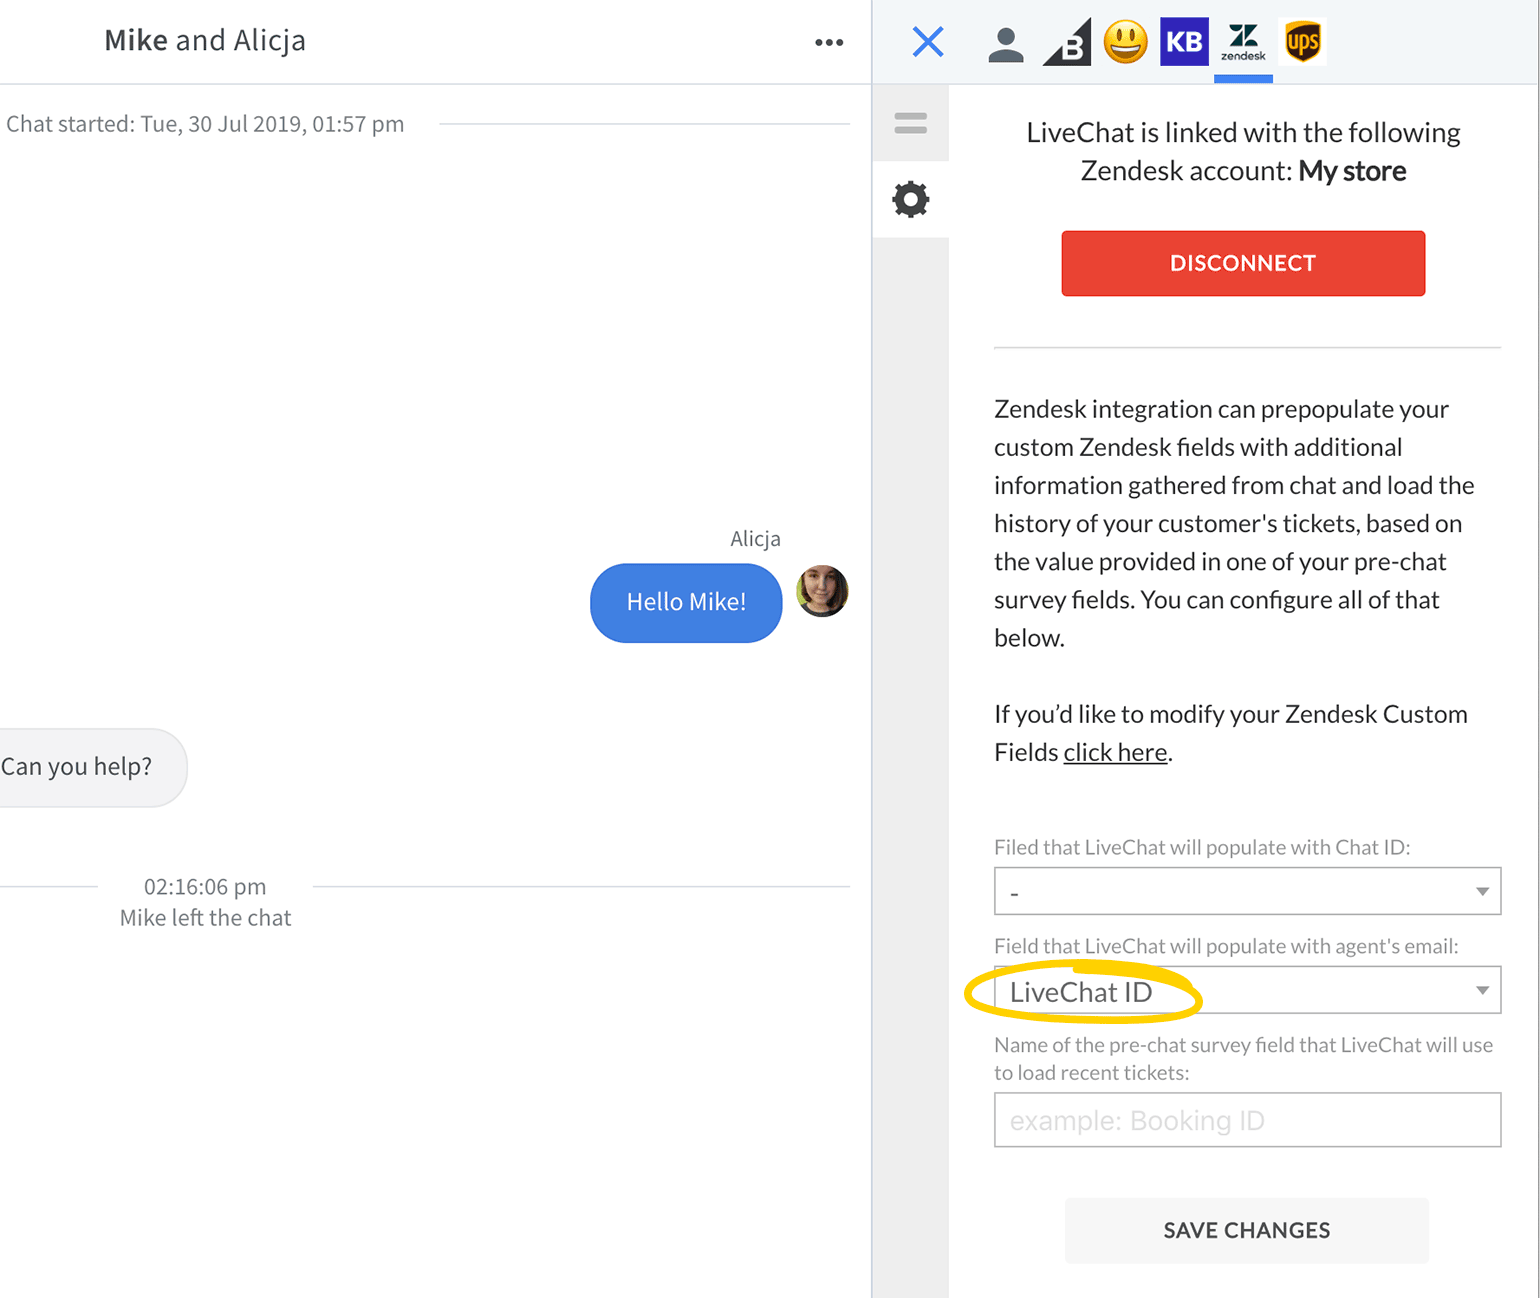 Choose custom field to be populated with LiveChat agent email